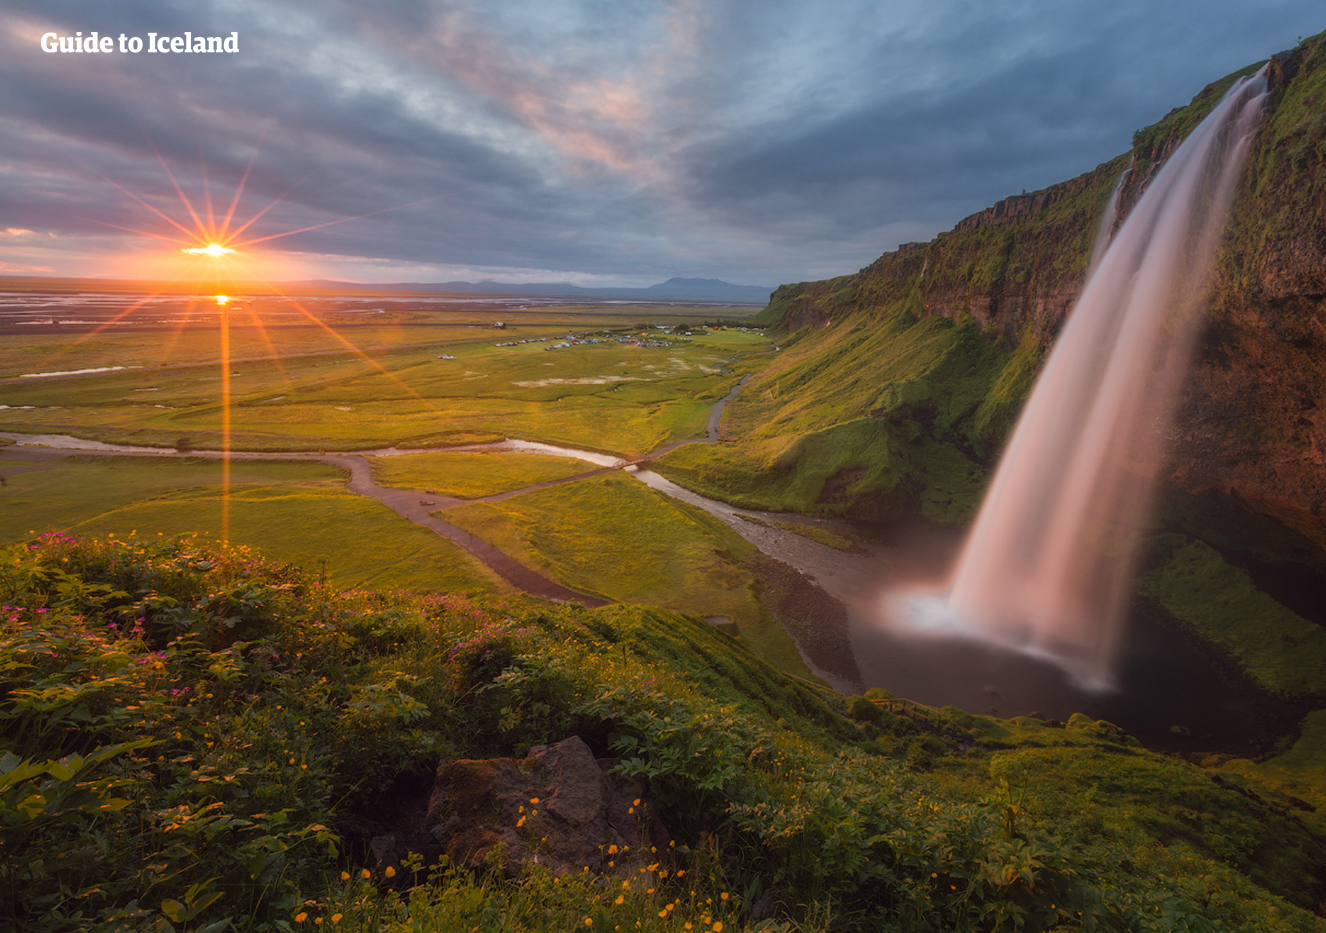 The sun sets on one of Iceland's most unique waterfalls, Seljalandsfoss.